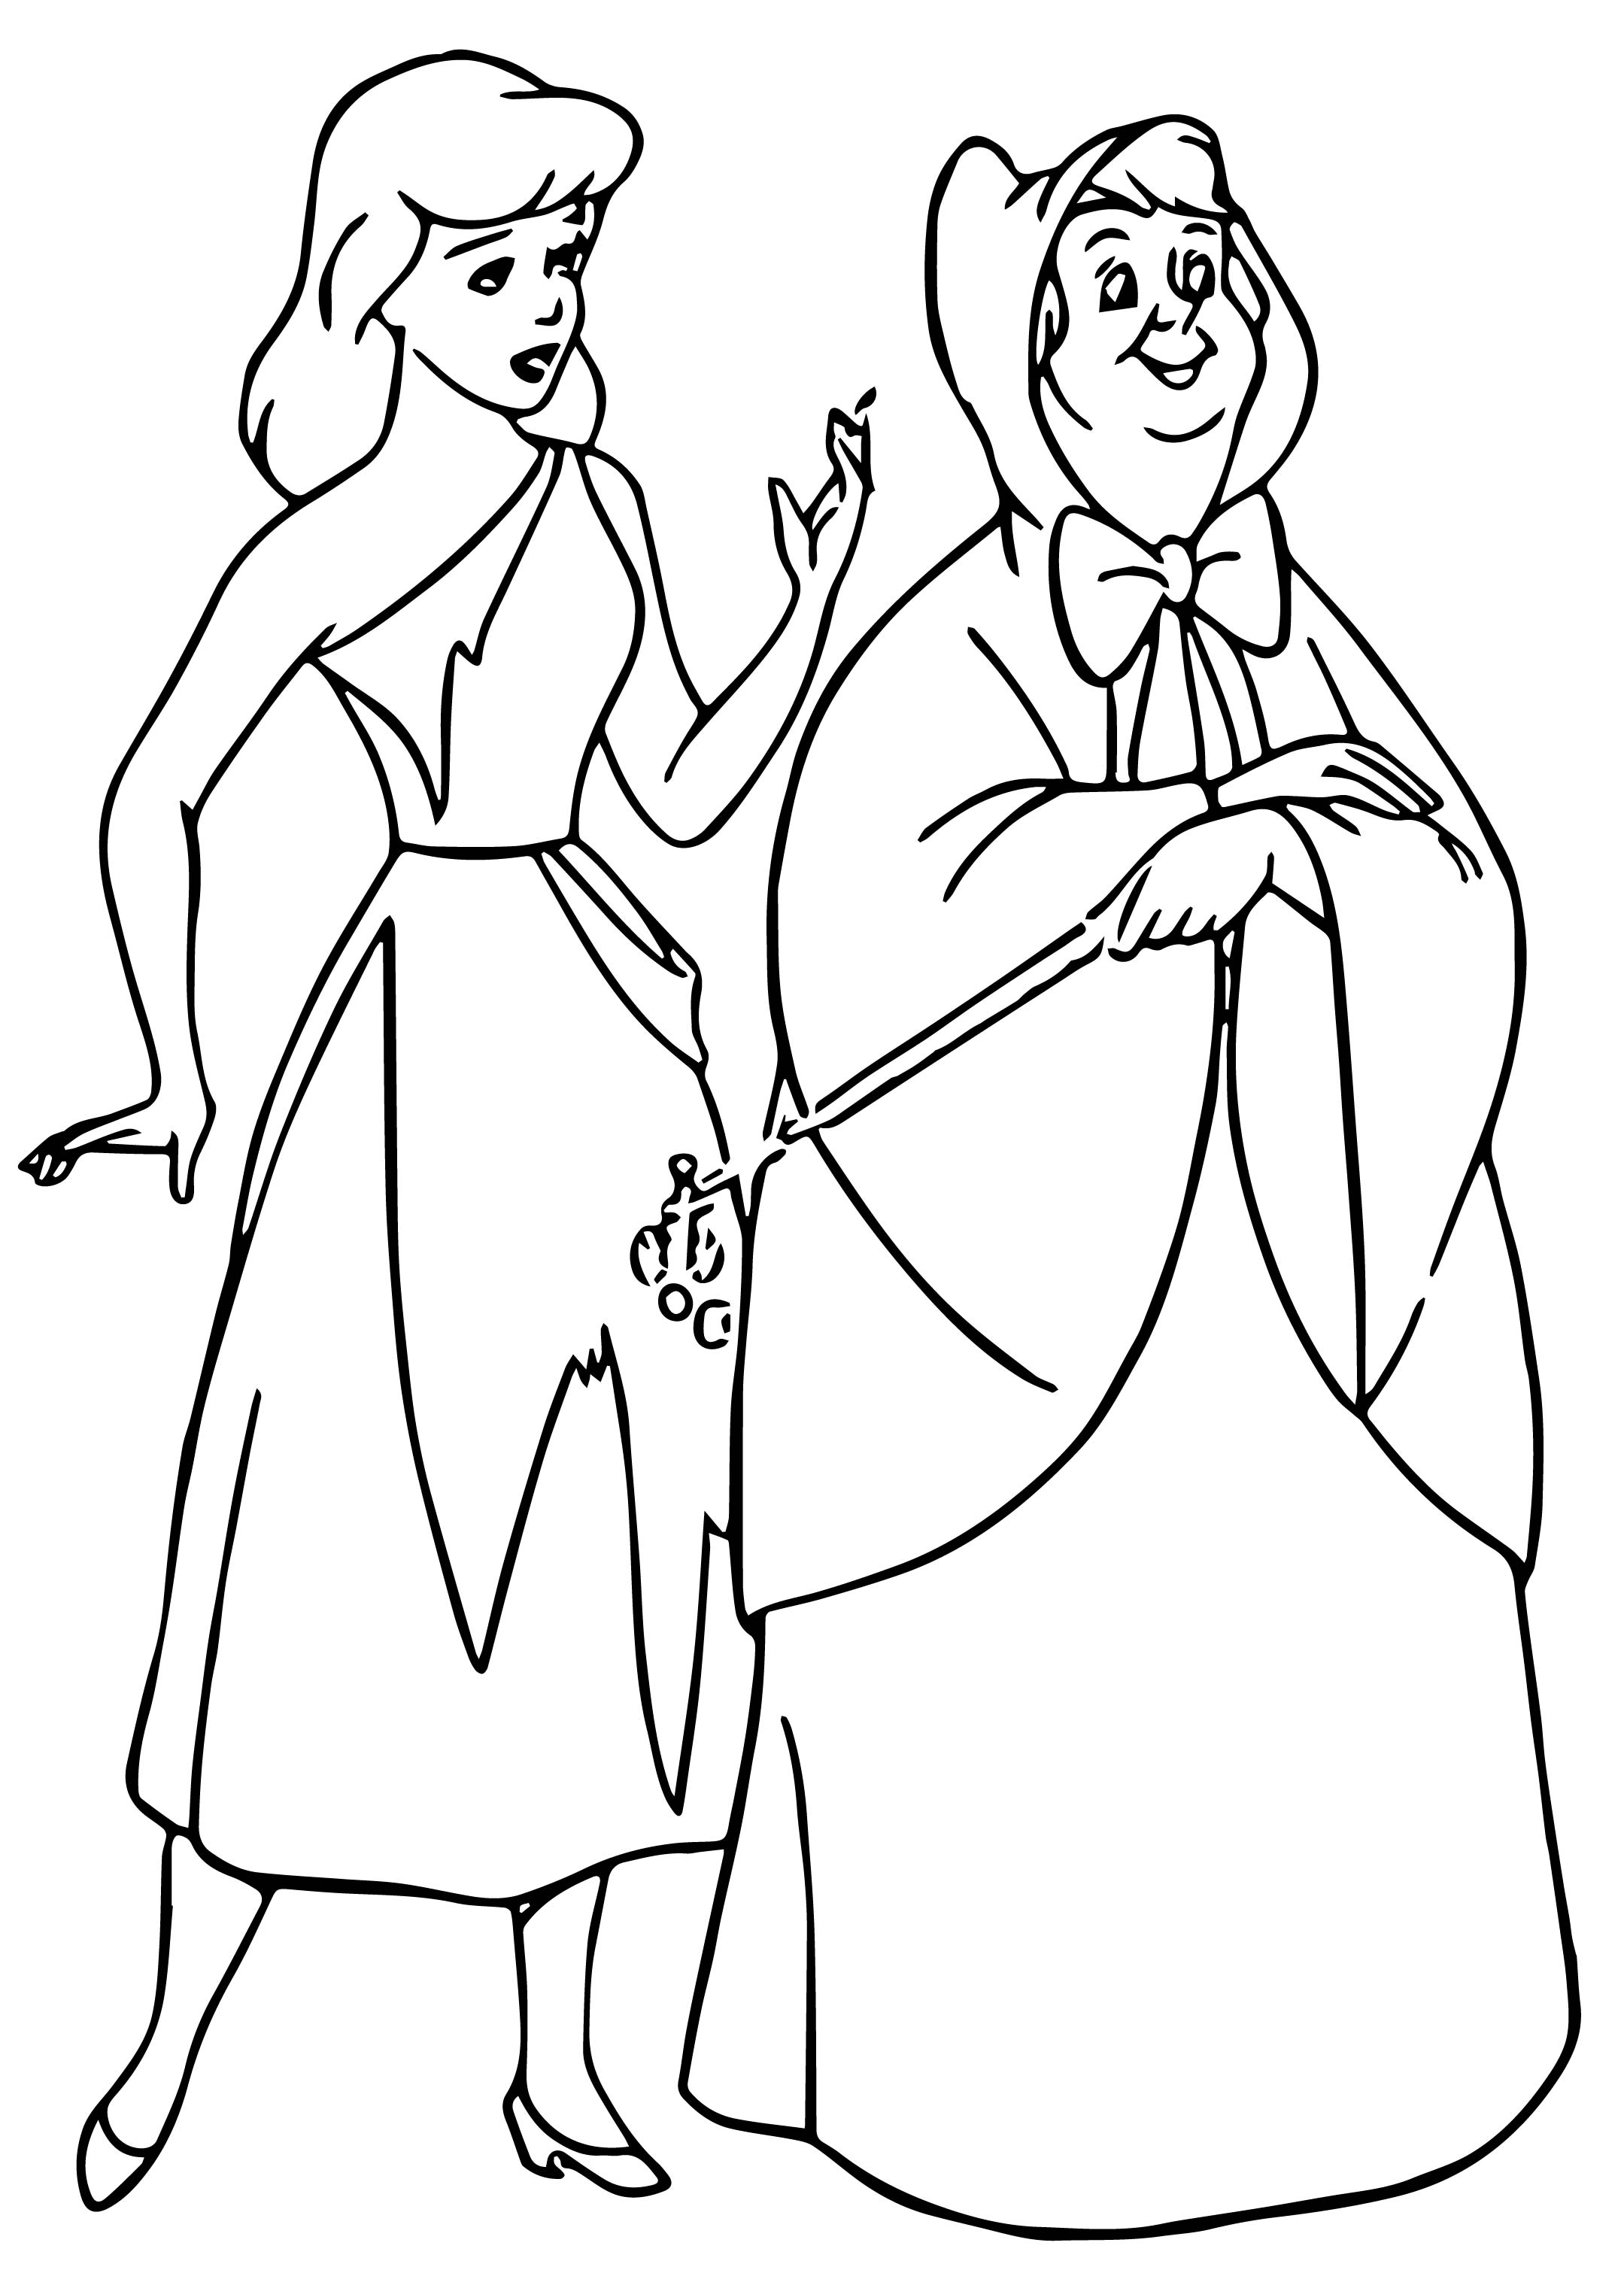 fairy godmother coloring page cinderella fairy godmother coloring pages 08 page fairy coloring godmother